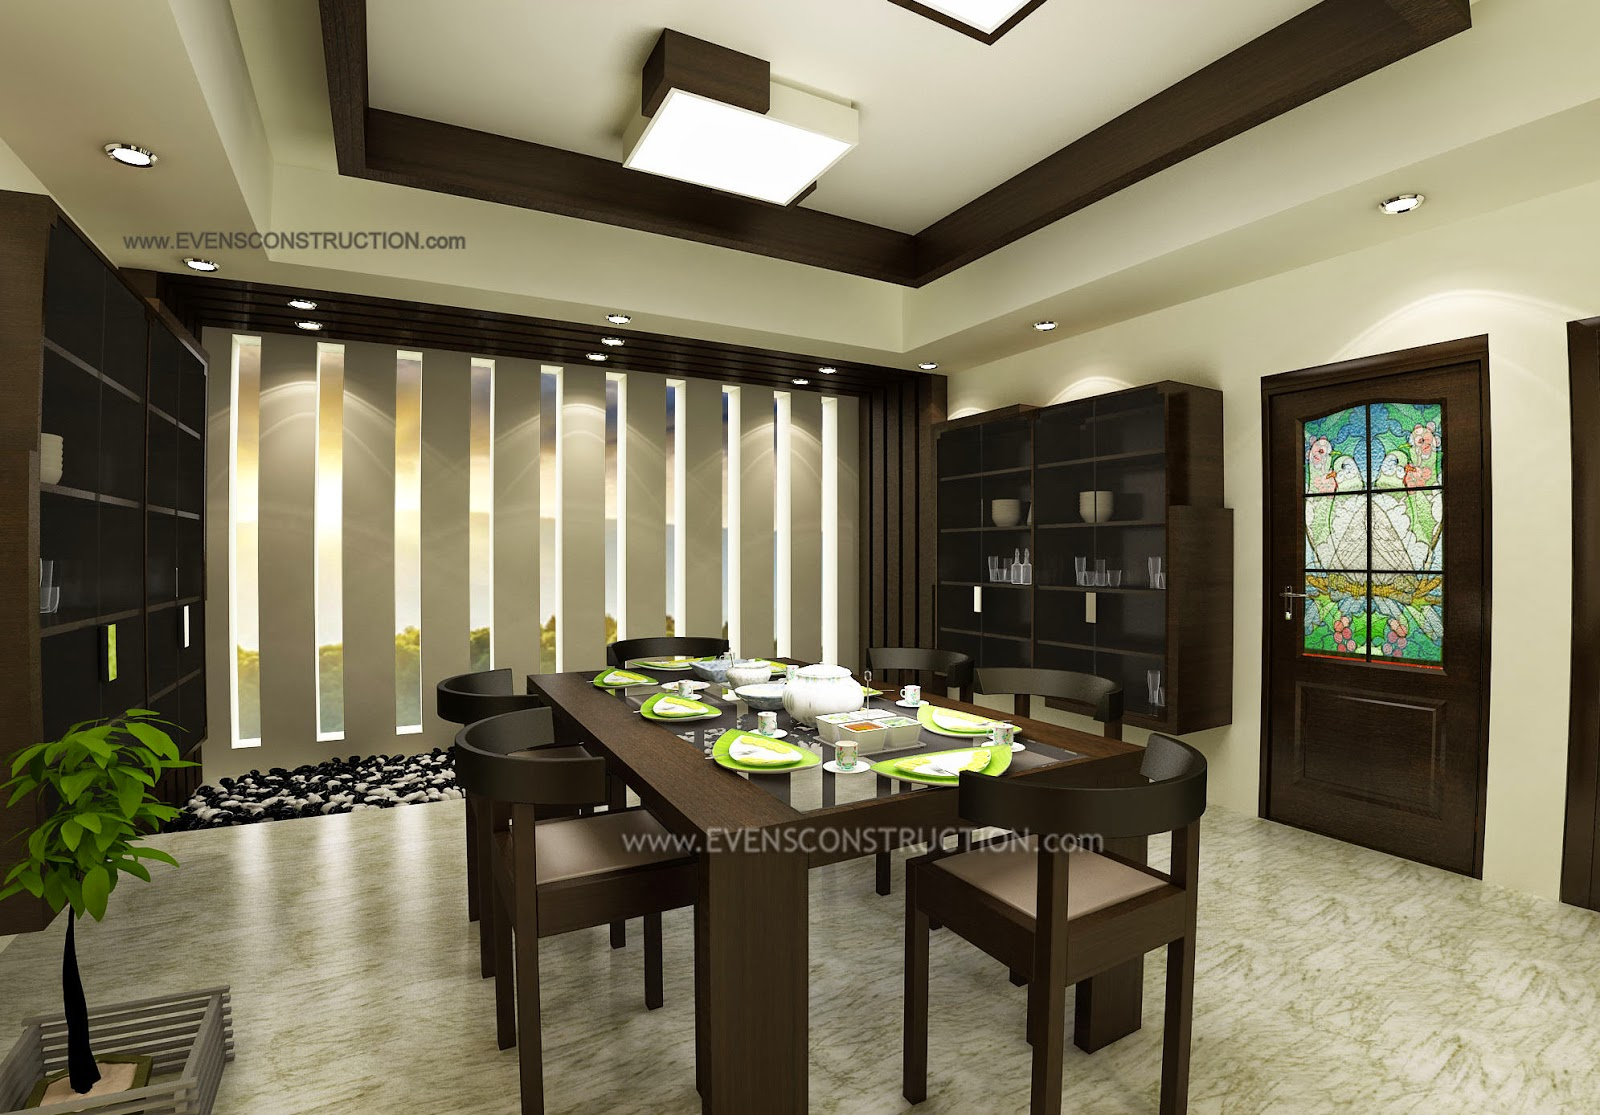 Evens construction pvt ltd modern dining room - Modern home dining rooms ...